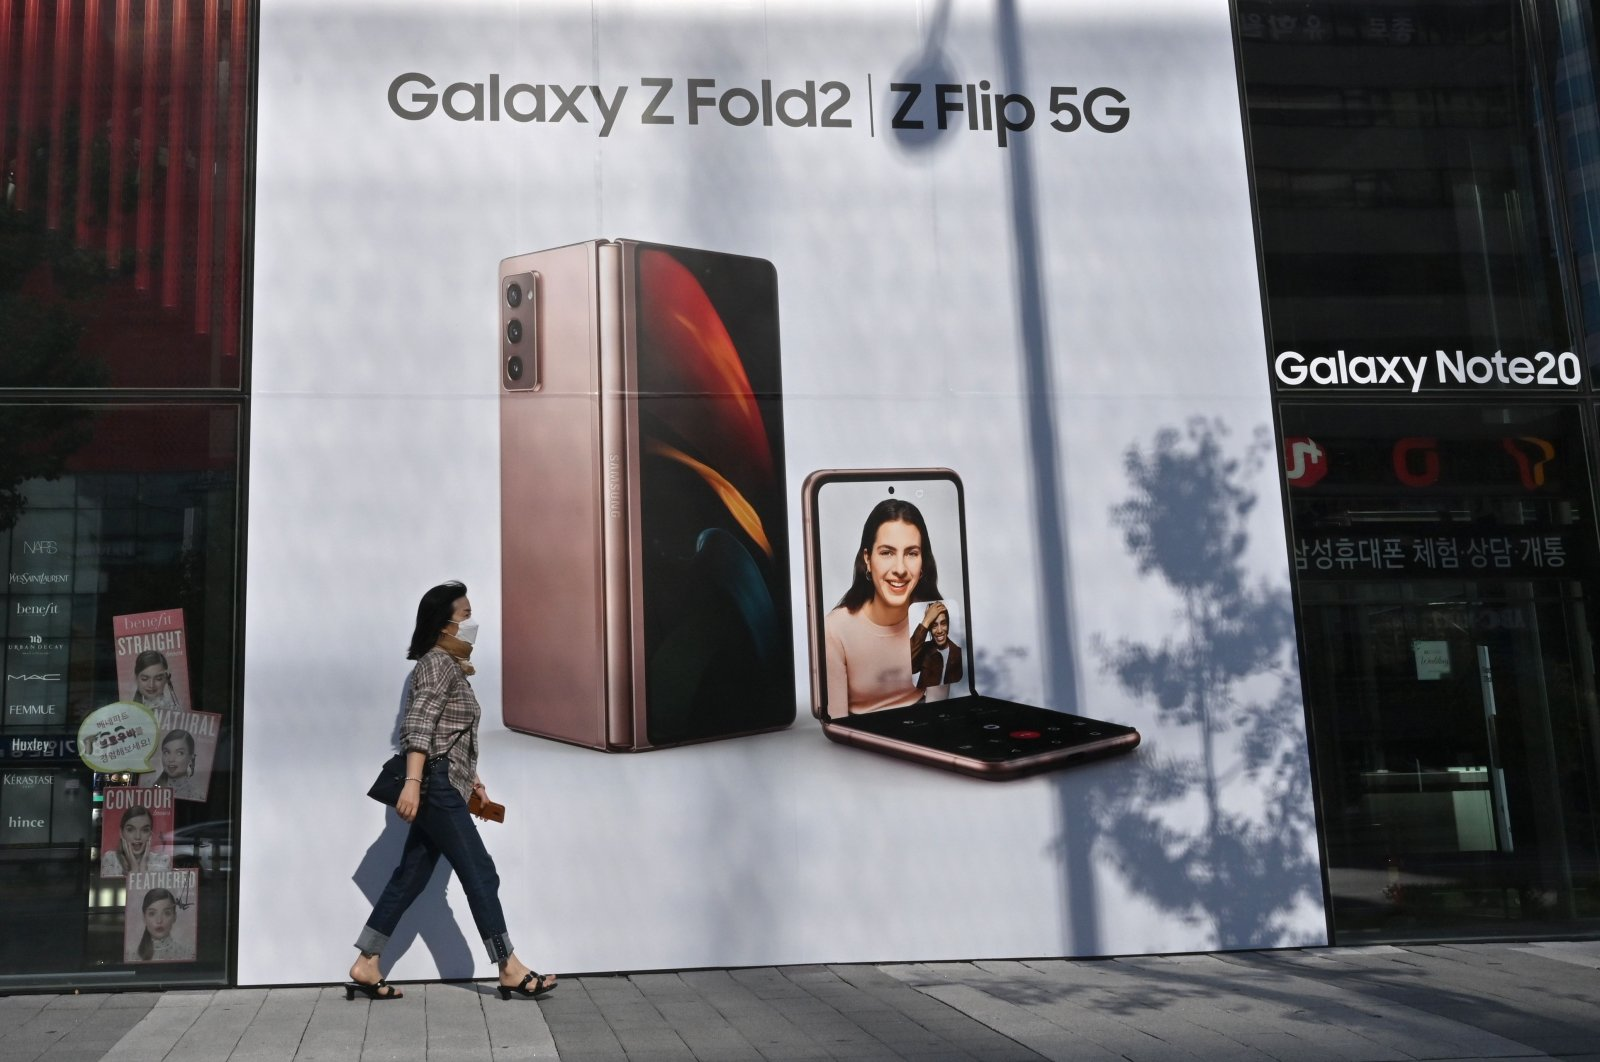 A woman walks past an advertisement for the Samsung Galaxy Z Fold2 and Z Flip smartphones at a Samsung Electronics store in Seoul on Oct. 8, 2020. (AFP Photo)